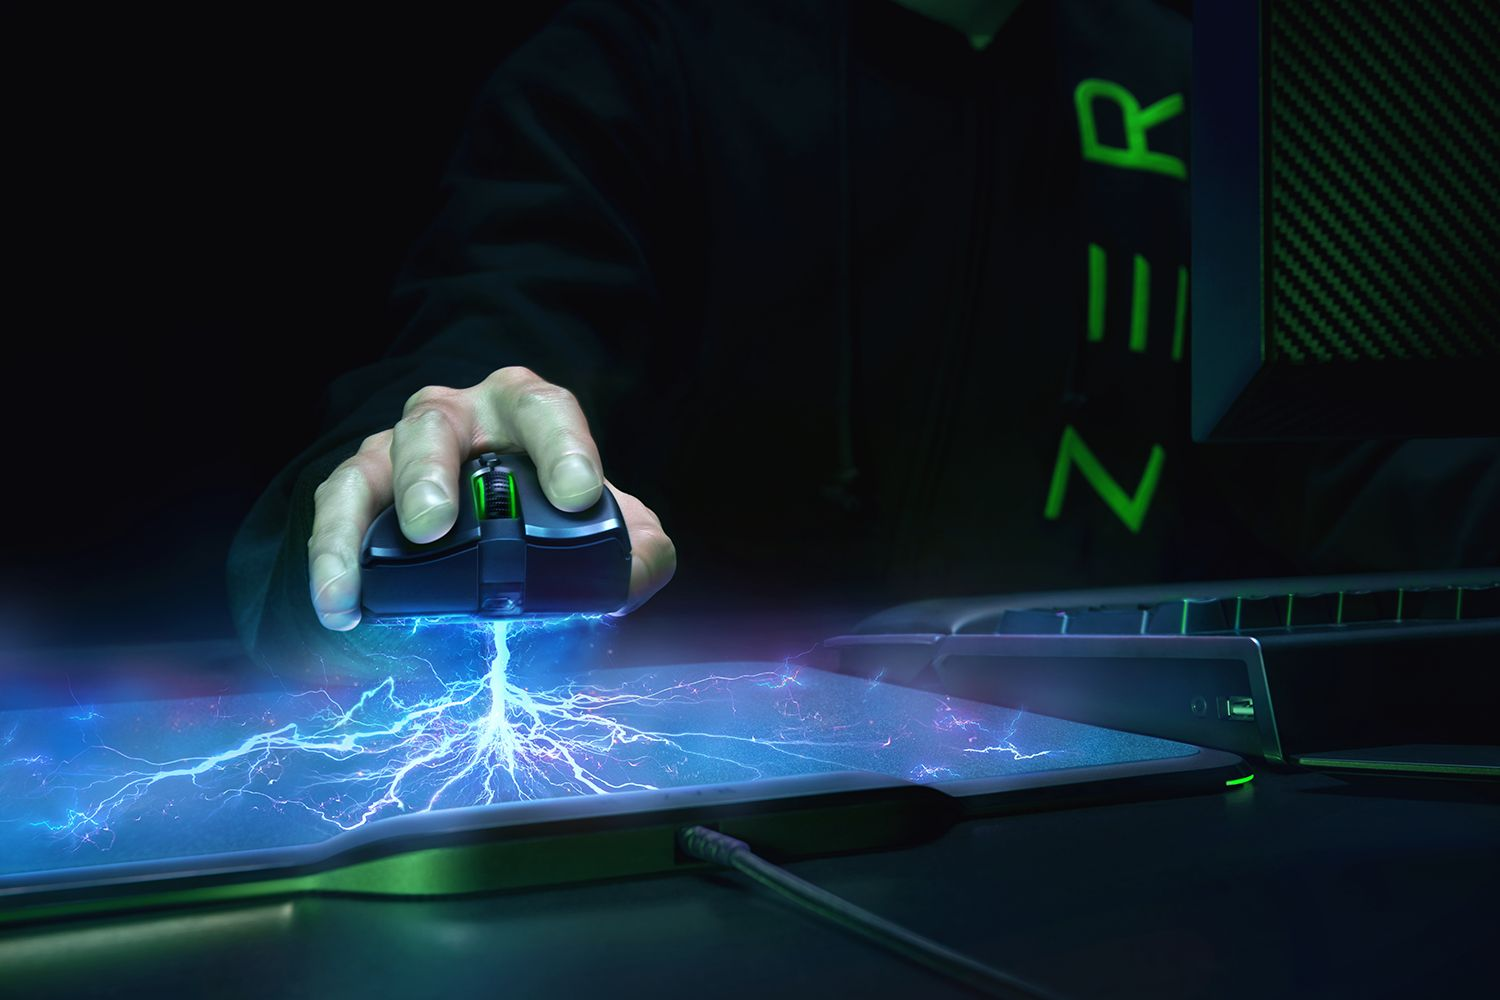 Razer's new mousemat will charge your mouse as you use it